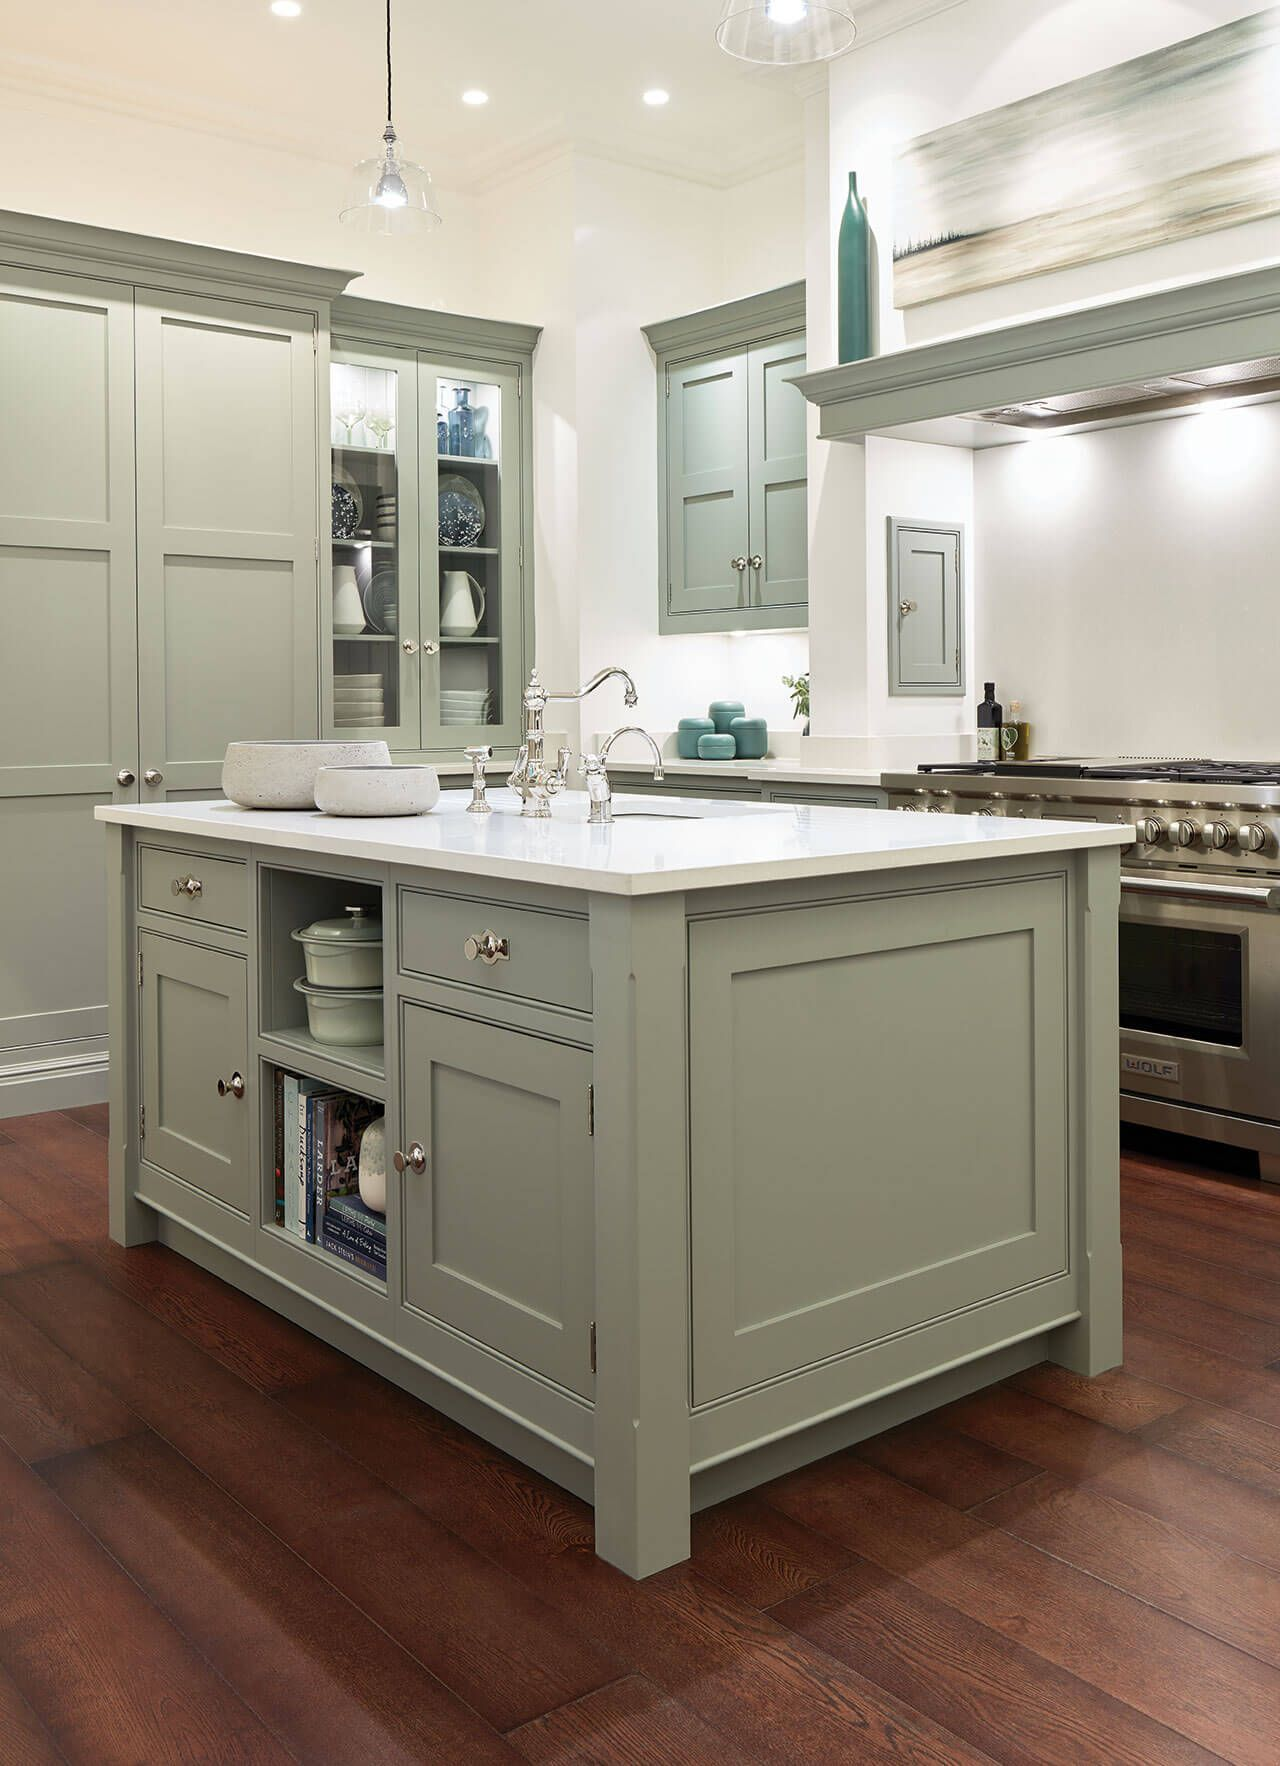 Hand Painted Shaker Kitchen In 2019 Tom Howley Hand Painted Shaker Shaker Kitchen Kitchen Interior Shaker Style Kitchens